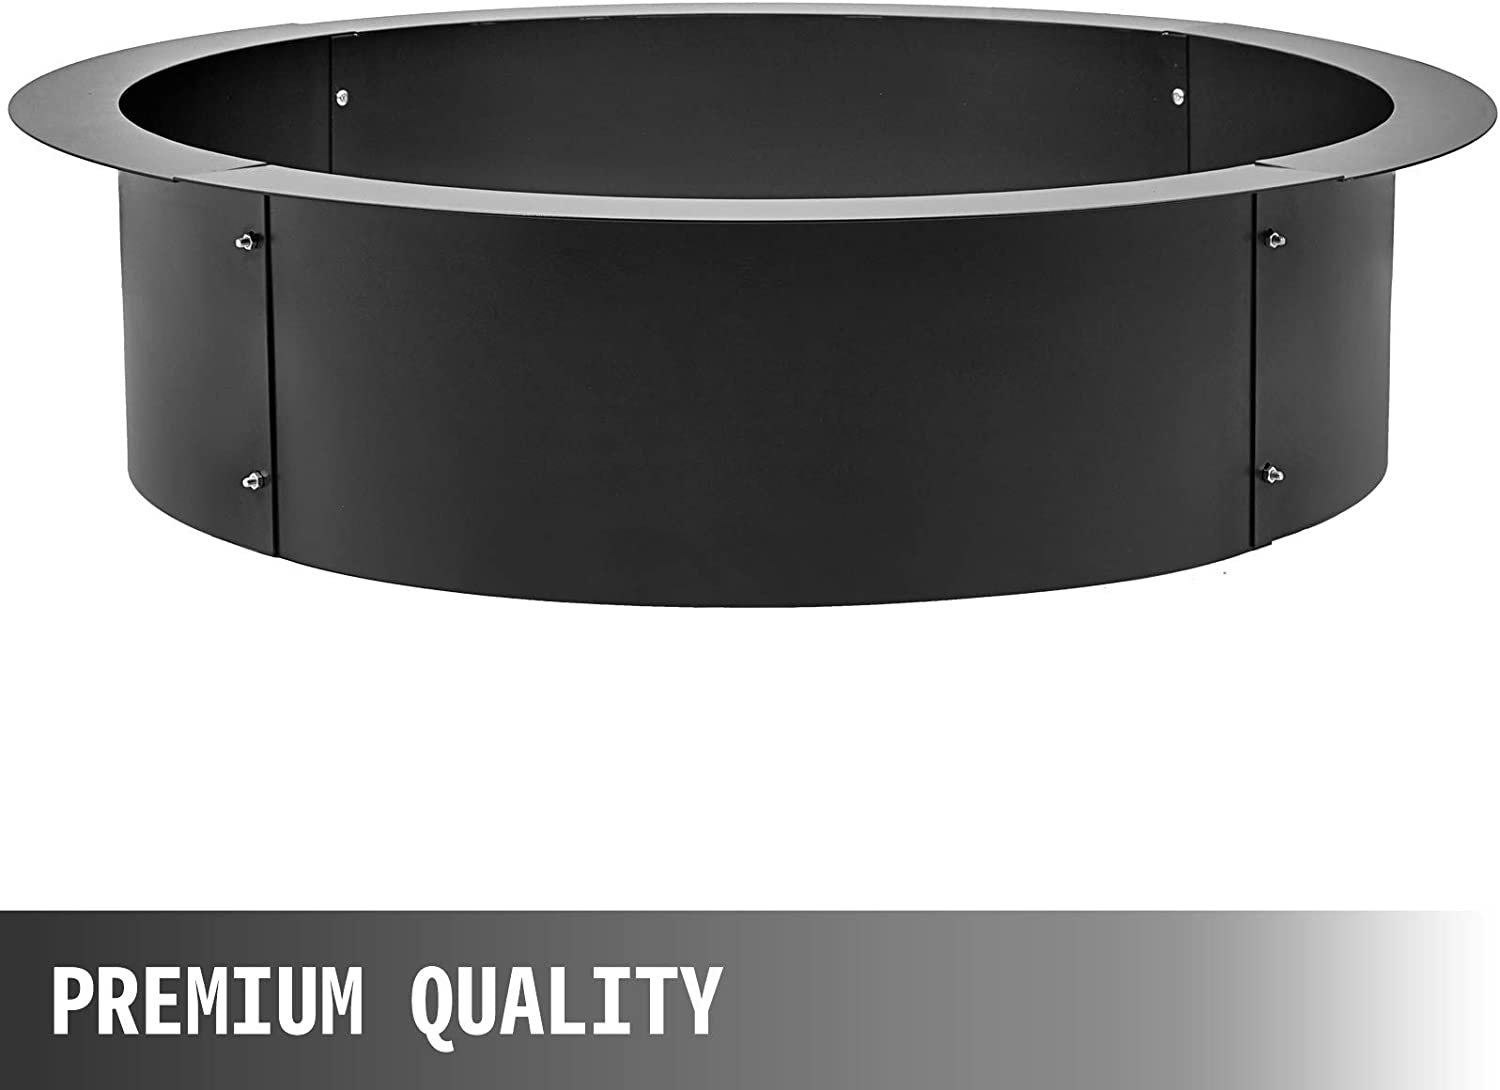 VBENLEM Fire Pit Ring 36 Inch Outsidex 30 Inch Inside Solid Steel 3.0mm Thick Fire Pit Liner DIY Campfire Ring Above or In-Ground for Outdoor